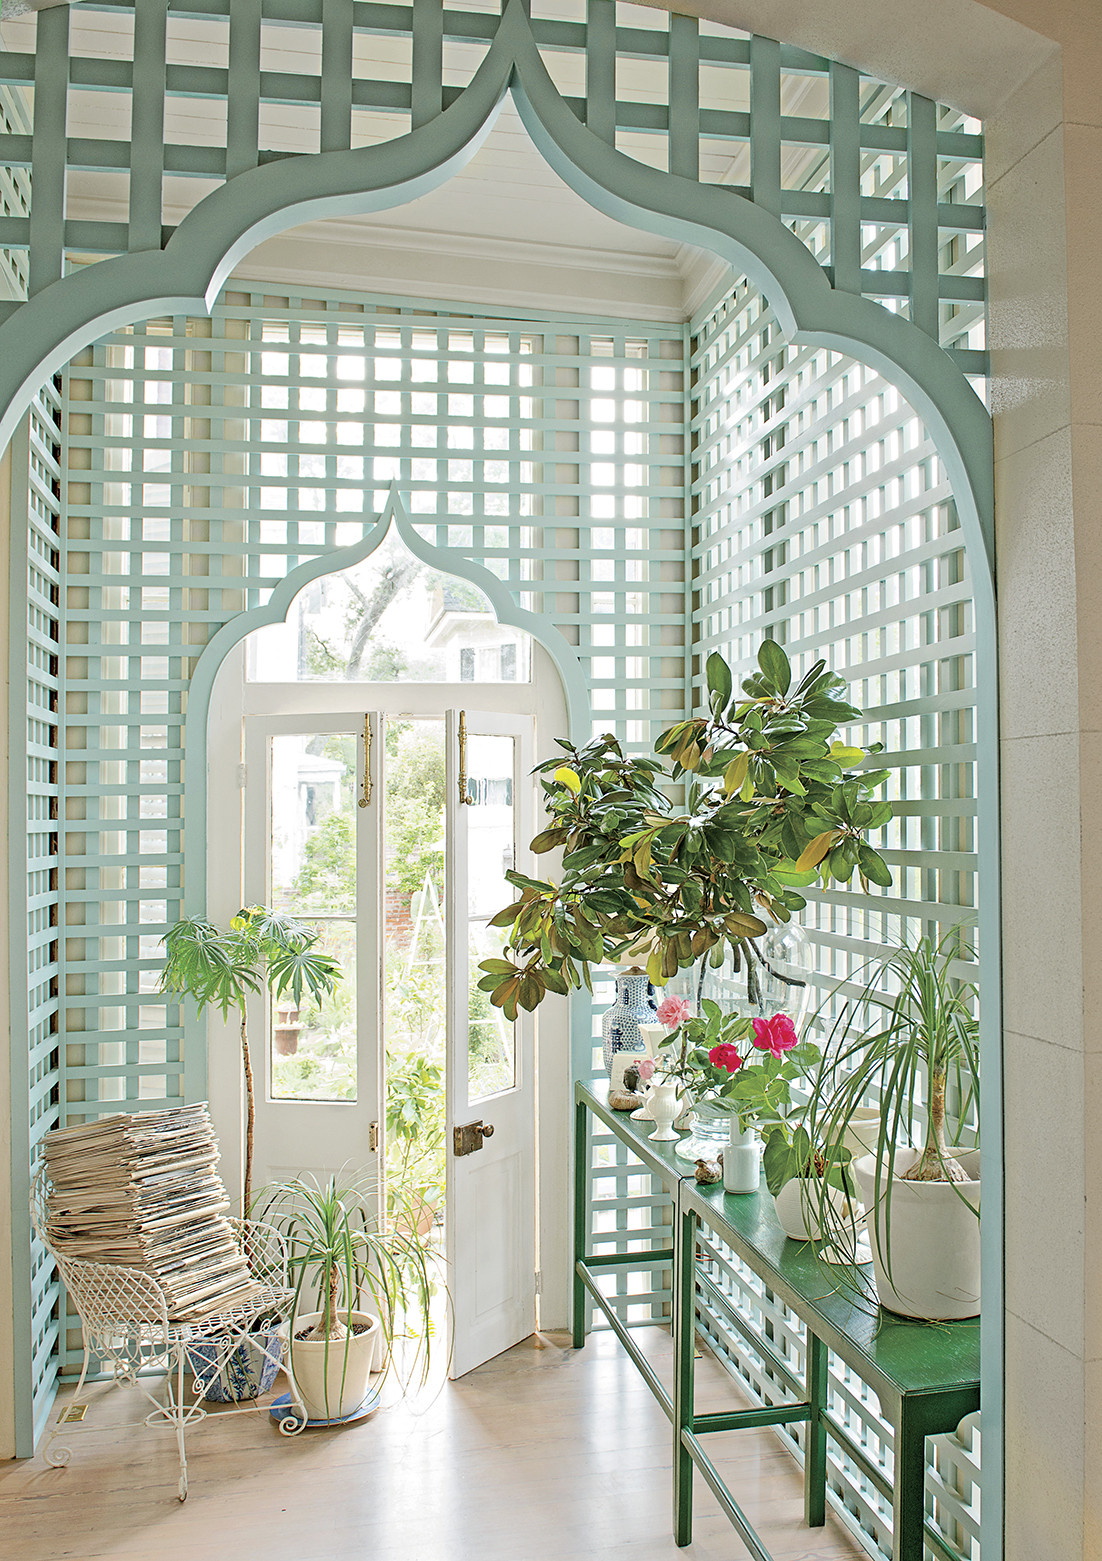 Paul Costello/Southern Living